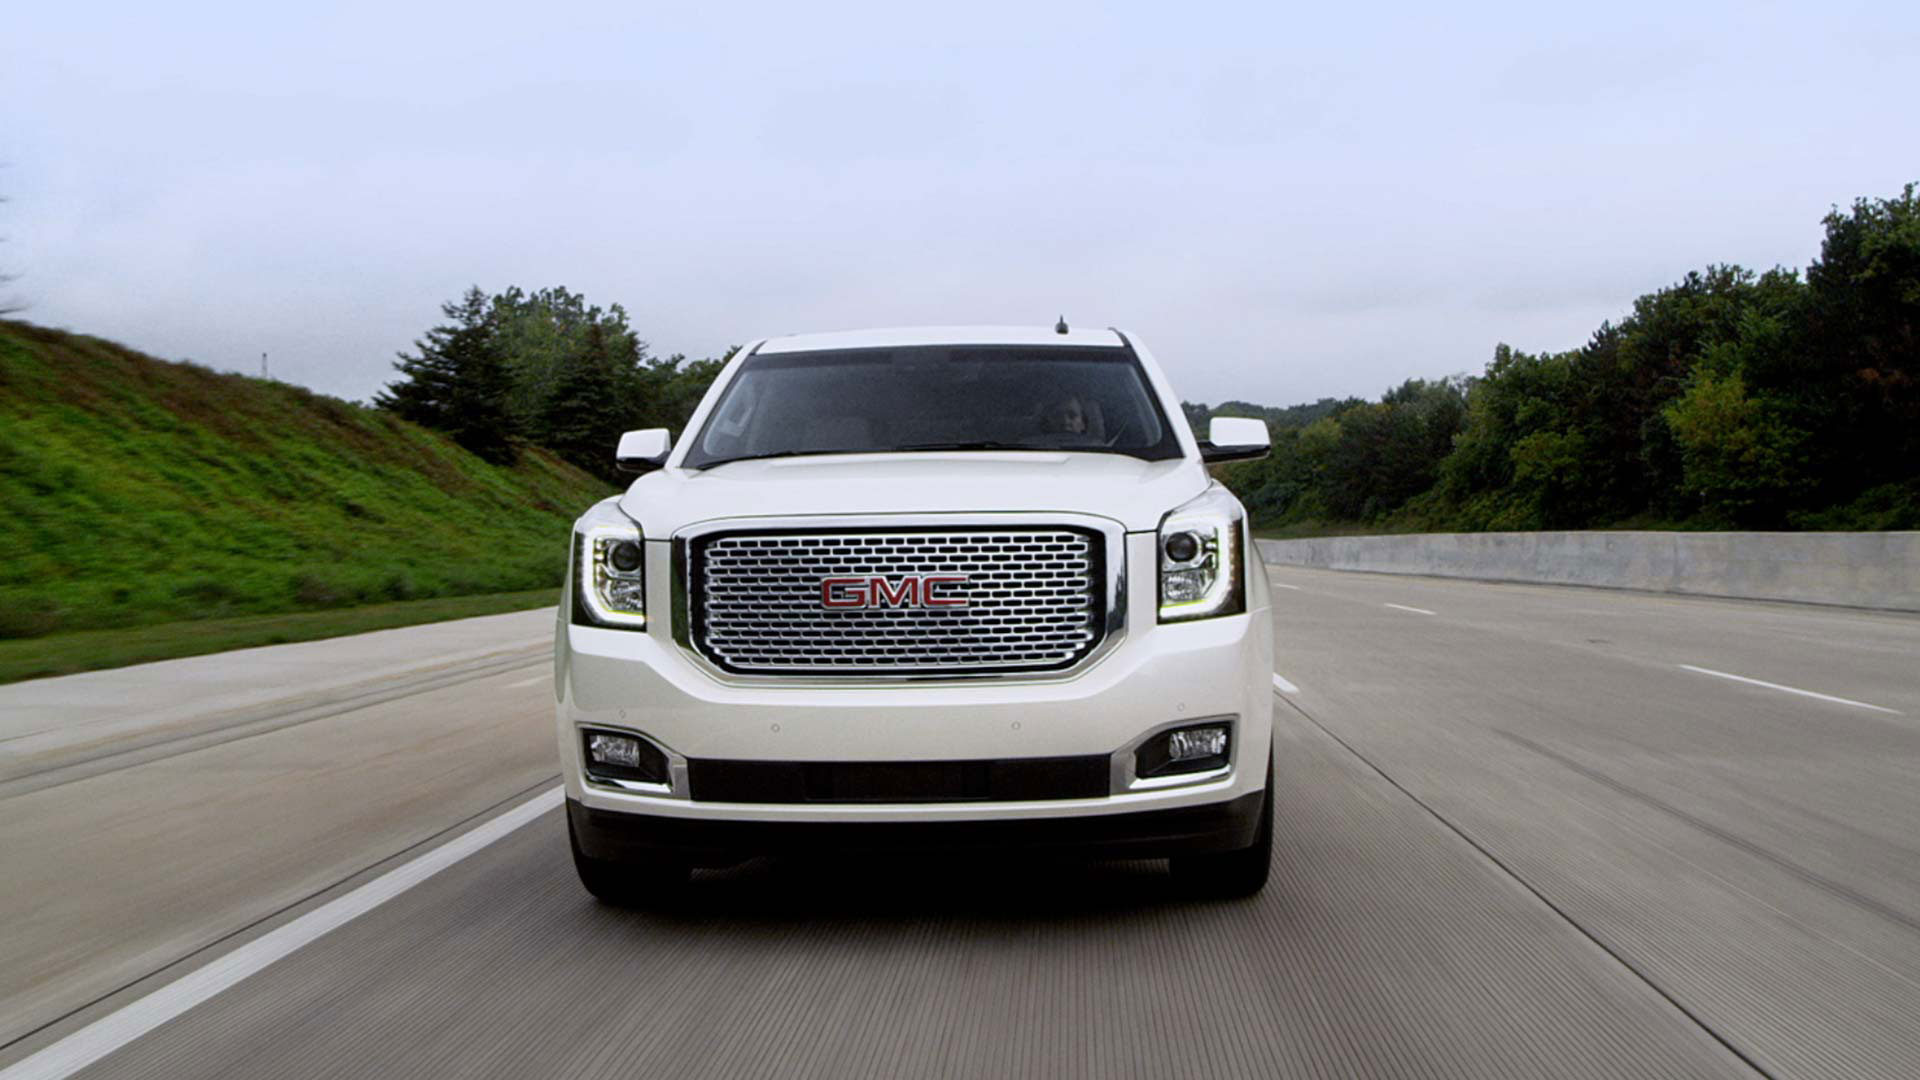 Introducing the all new 2015 GMC Yukon XL Denali extended luxury SUV.